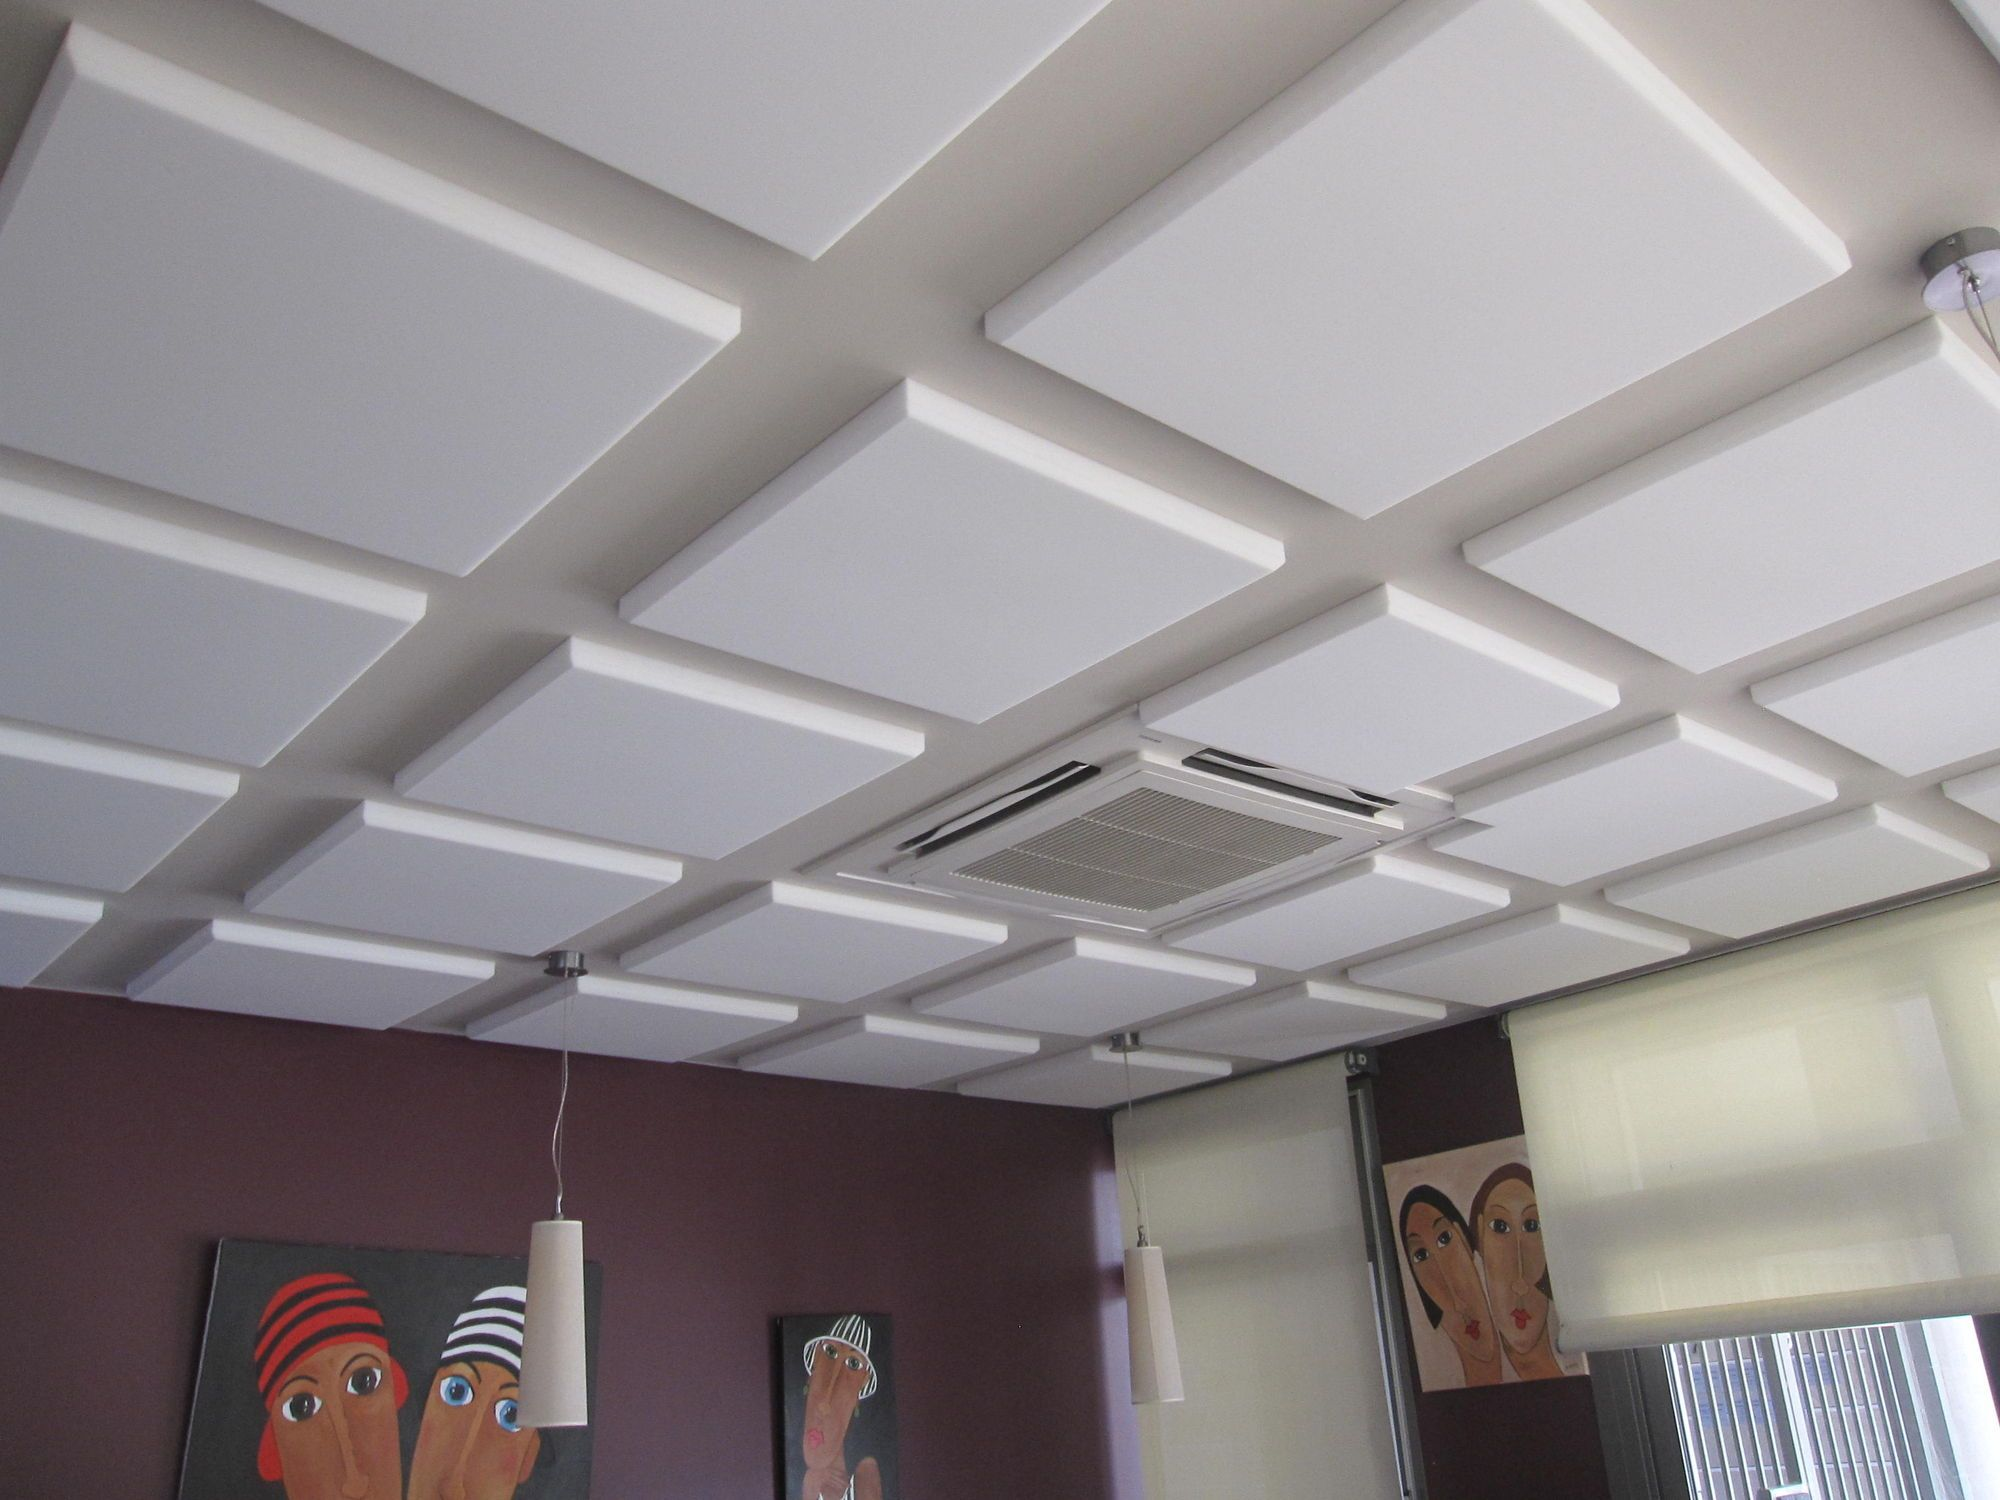 Alluring drop ceiling tile panels idea in white color with square alluring drop ceiling tile panels idea in white color with square shaped tiles and beige ceiling doublecrazyfo Gallery